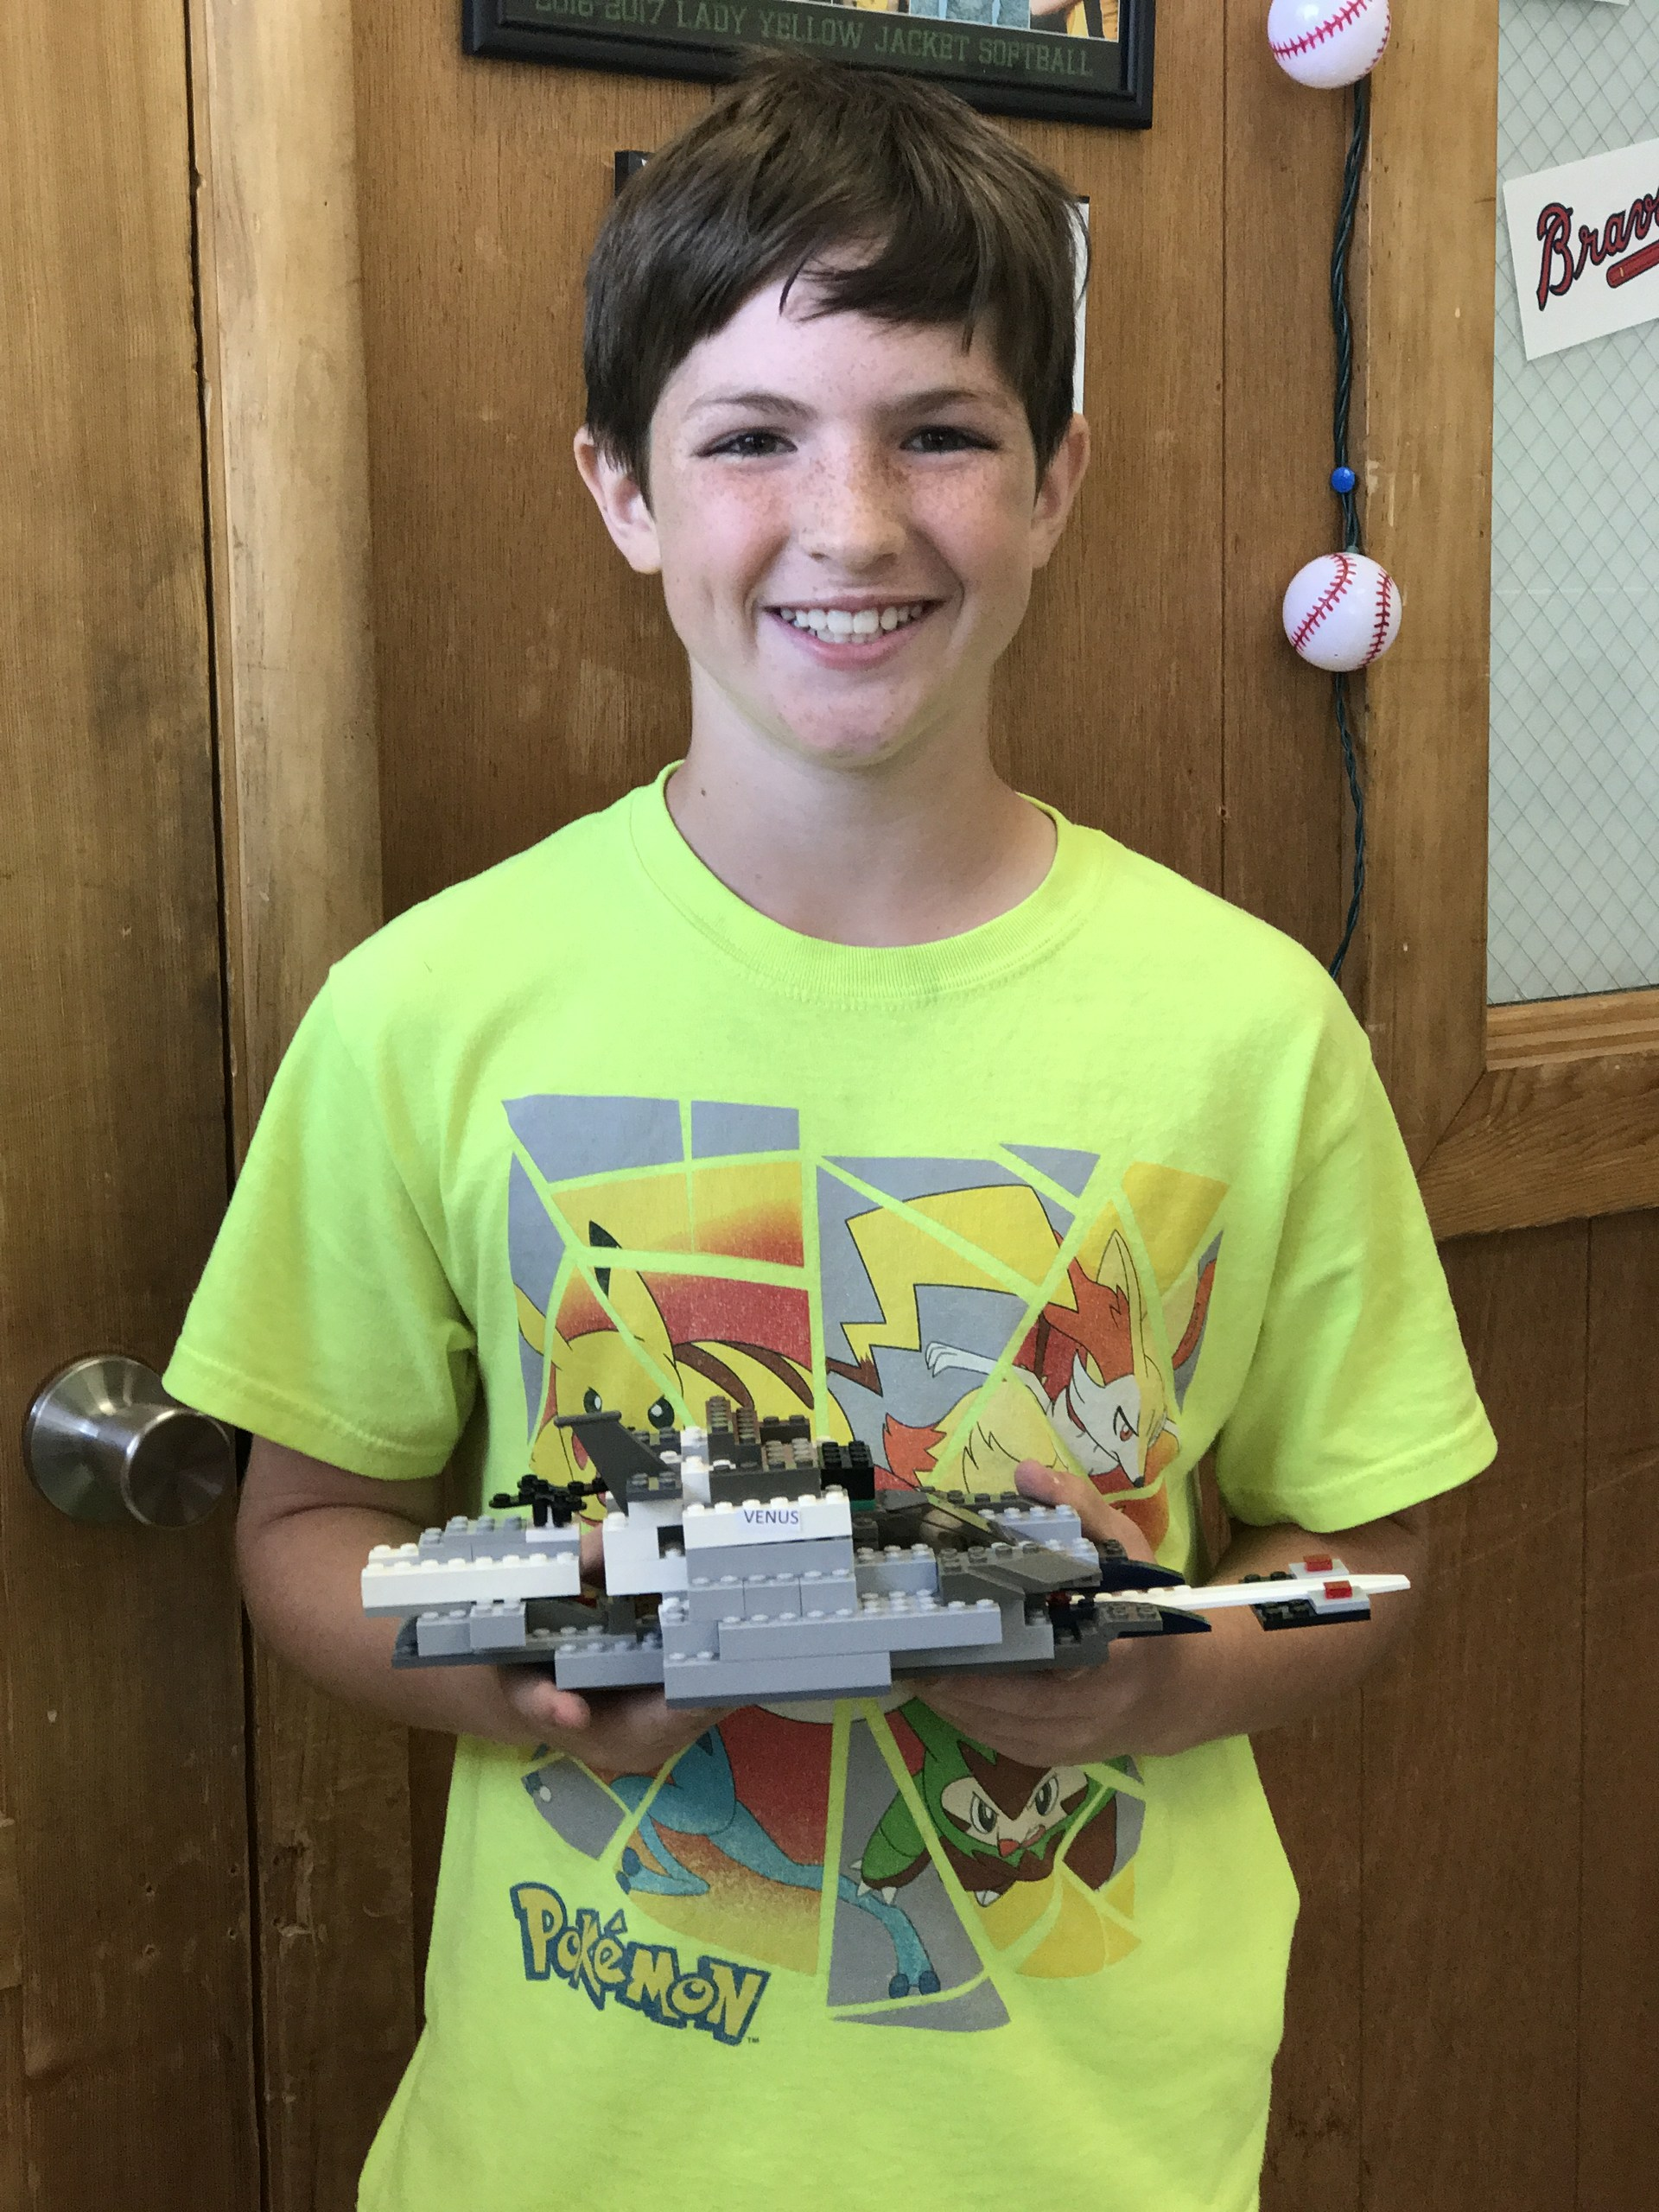 Nathan used Legos to build a spacecraft